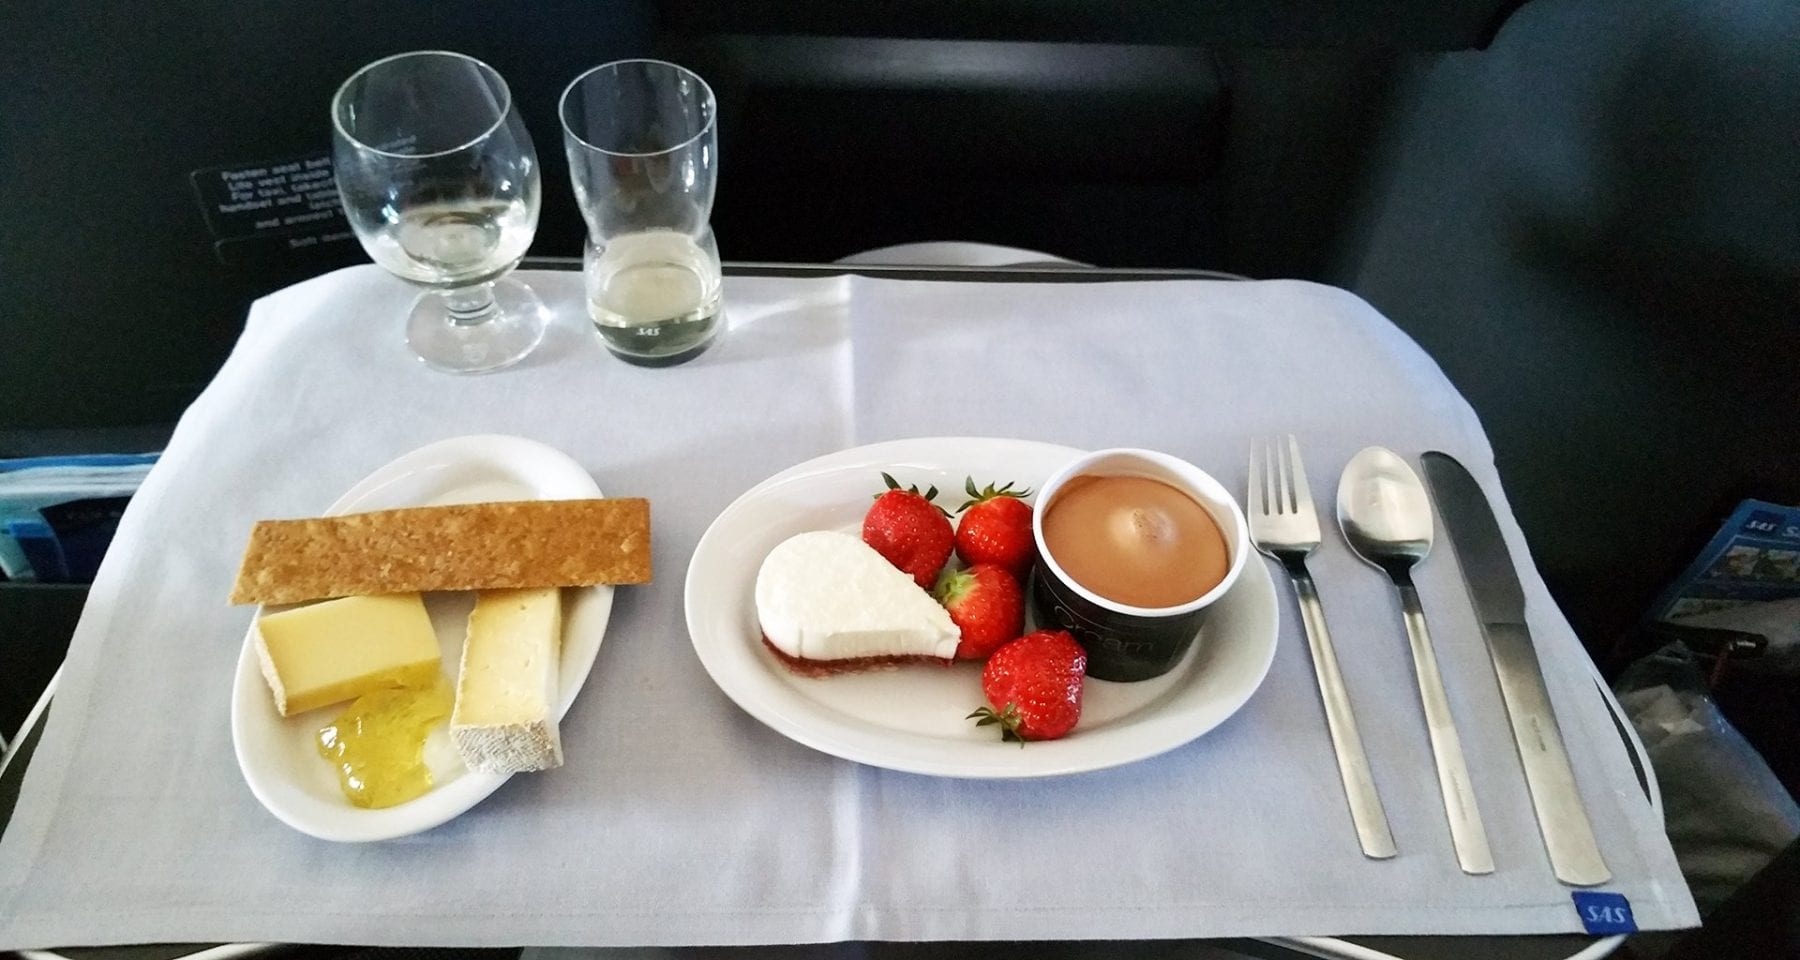 SAS Scandinavian airlines business class dessert icecream and cheese